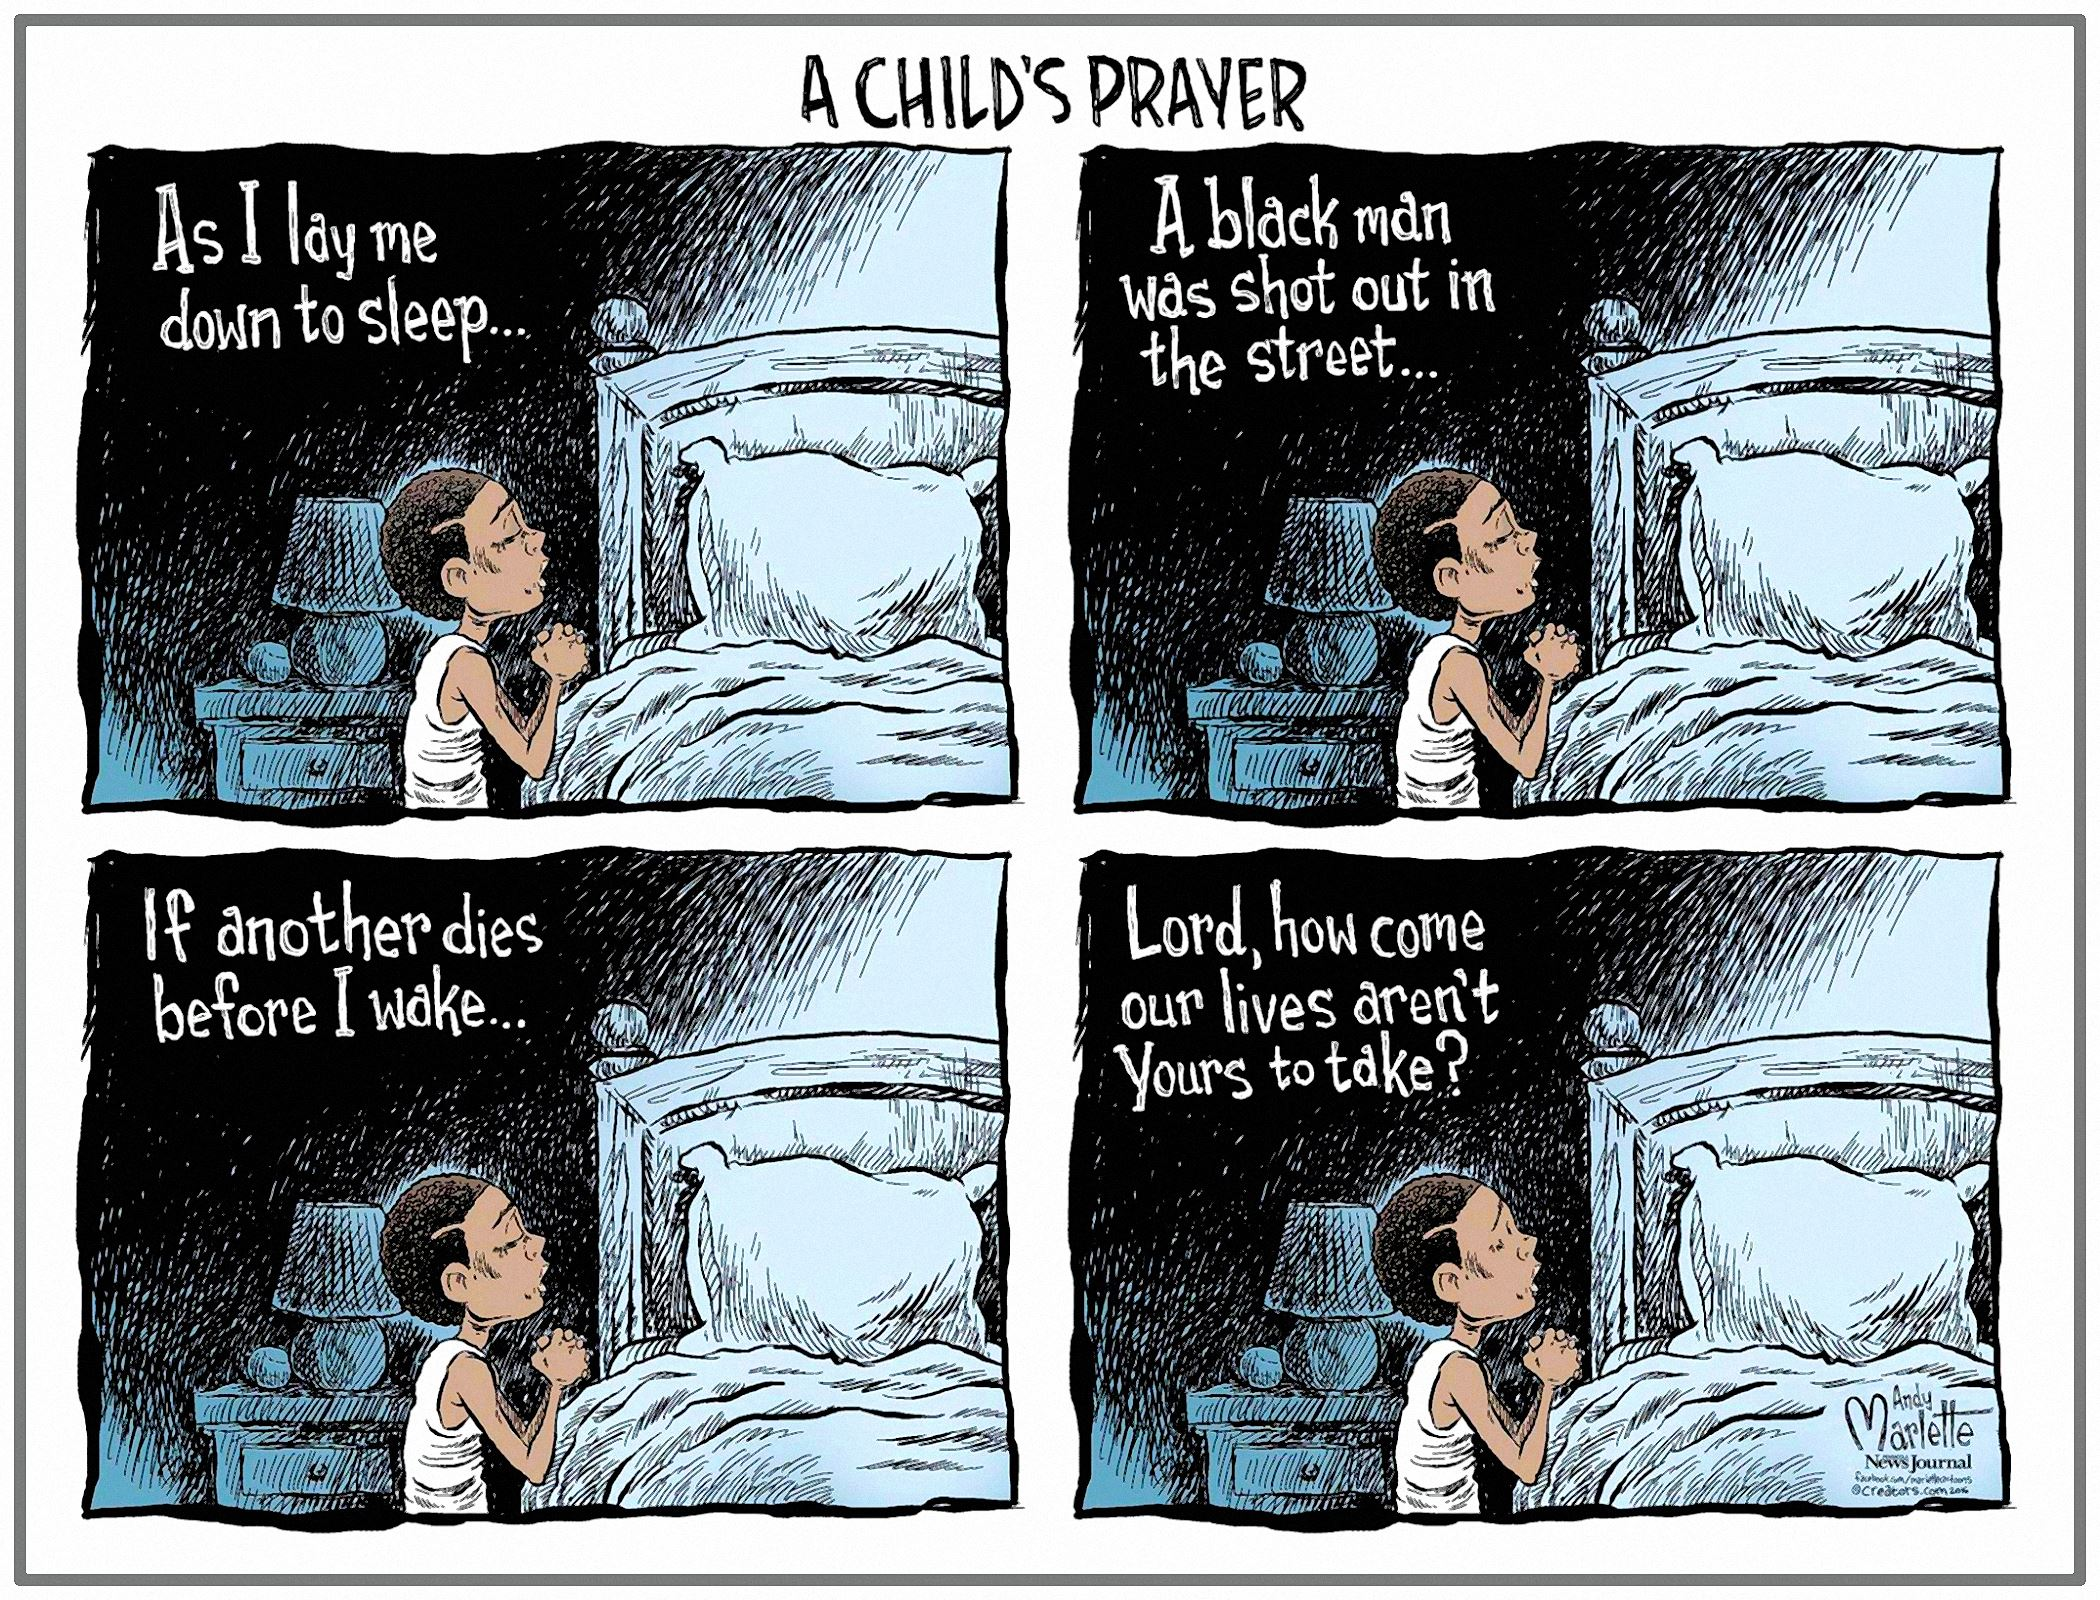 00 Andy Marlette. A Child's Prayer. 2016